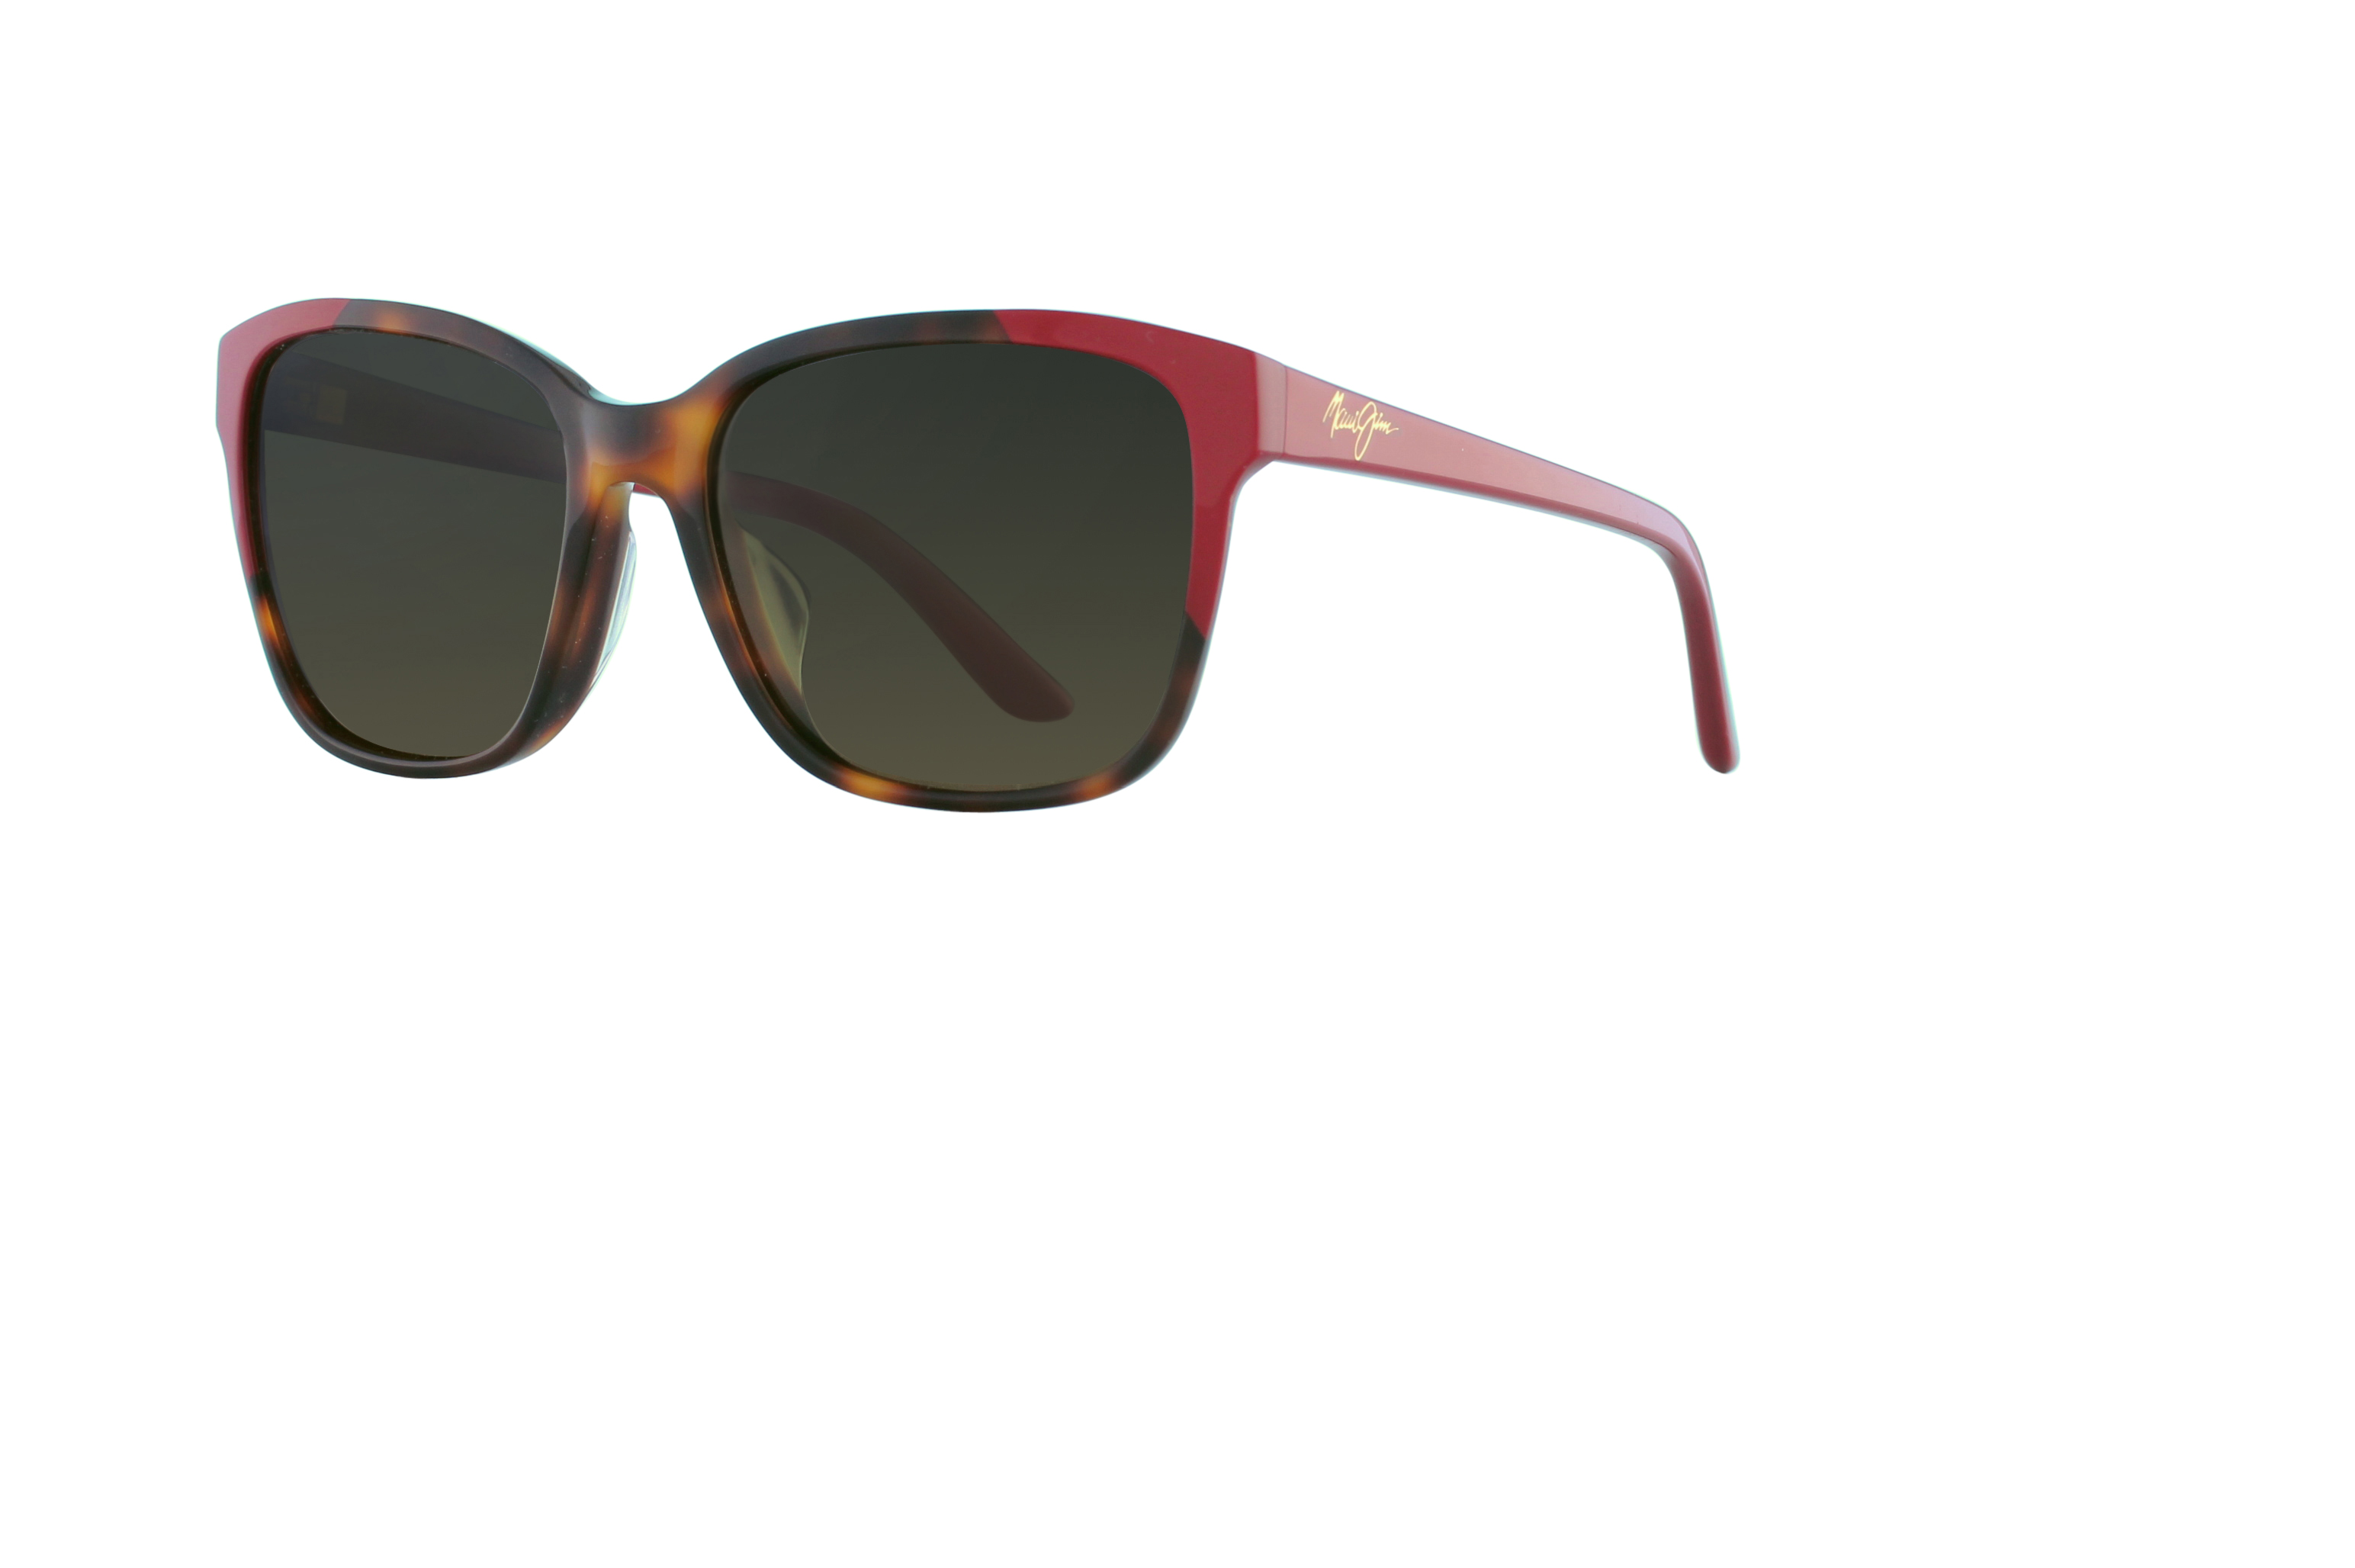 Maui Jim MOONBOW726-S-TORTOISEWITHRED-57-19-140